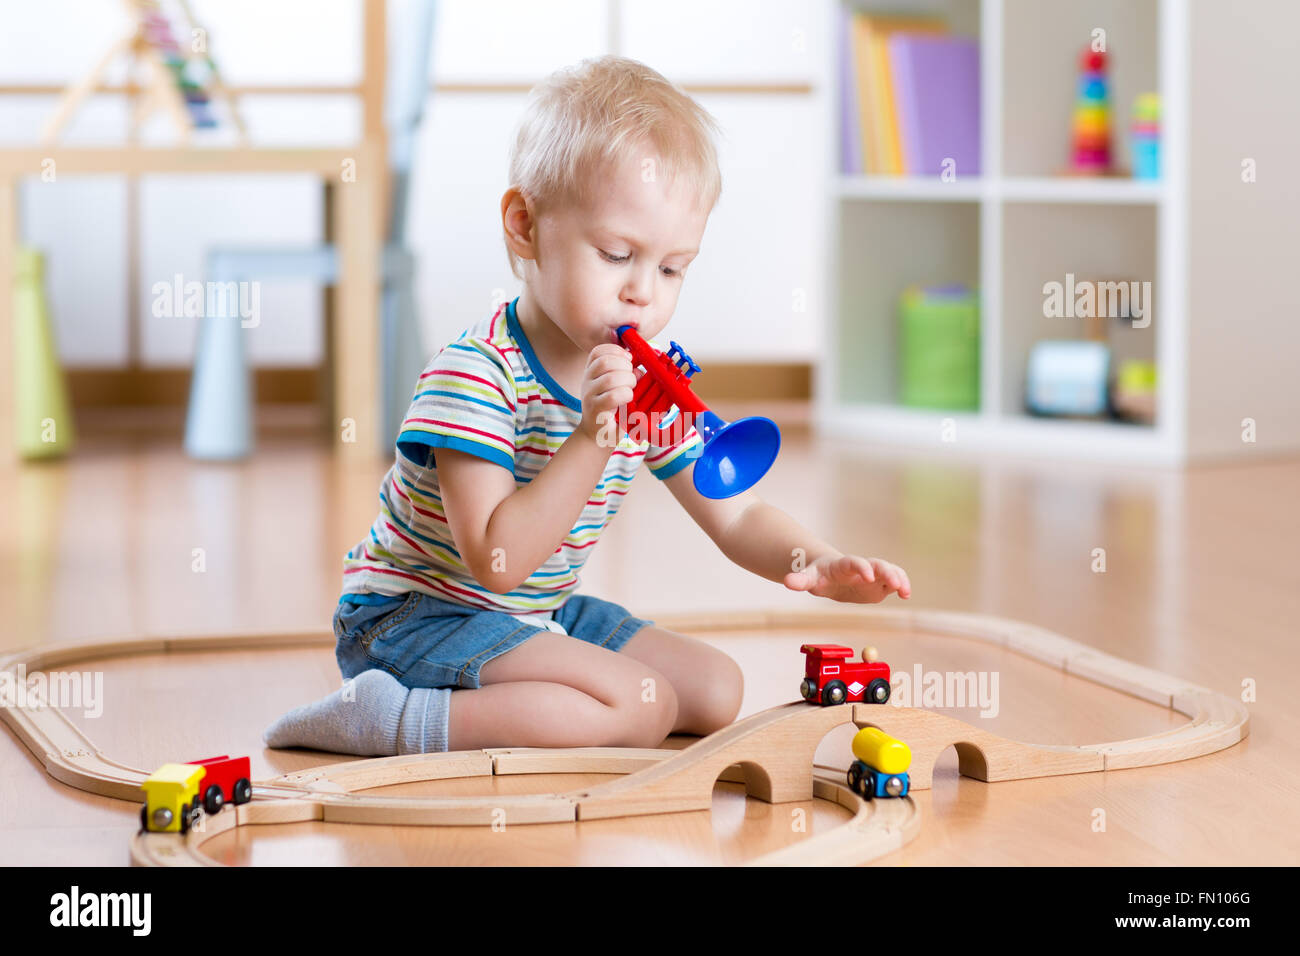 Child playing with wooden railway on the floor in nursery. Little boy plays a pipe imagining the train driver that - Stock Image